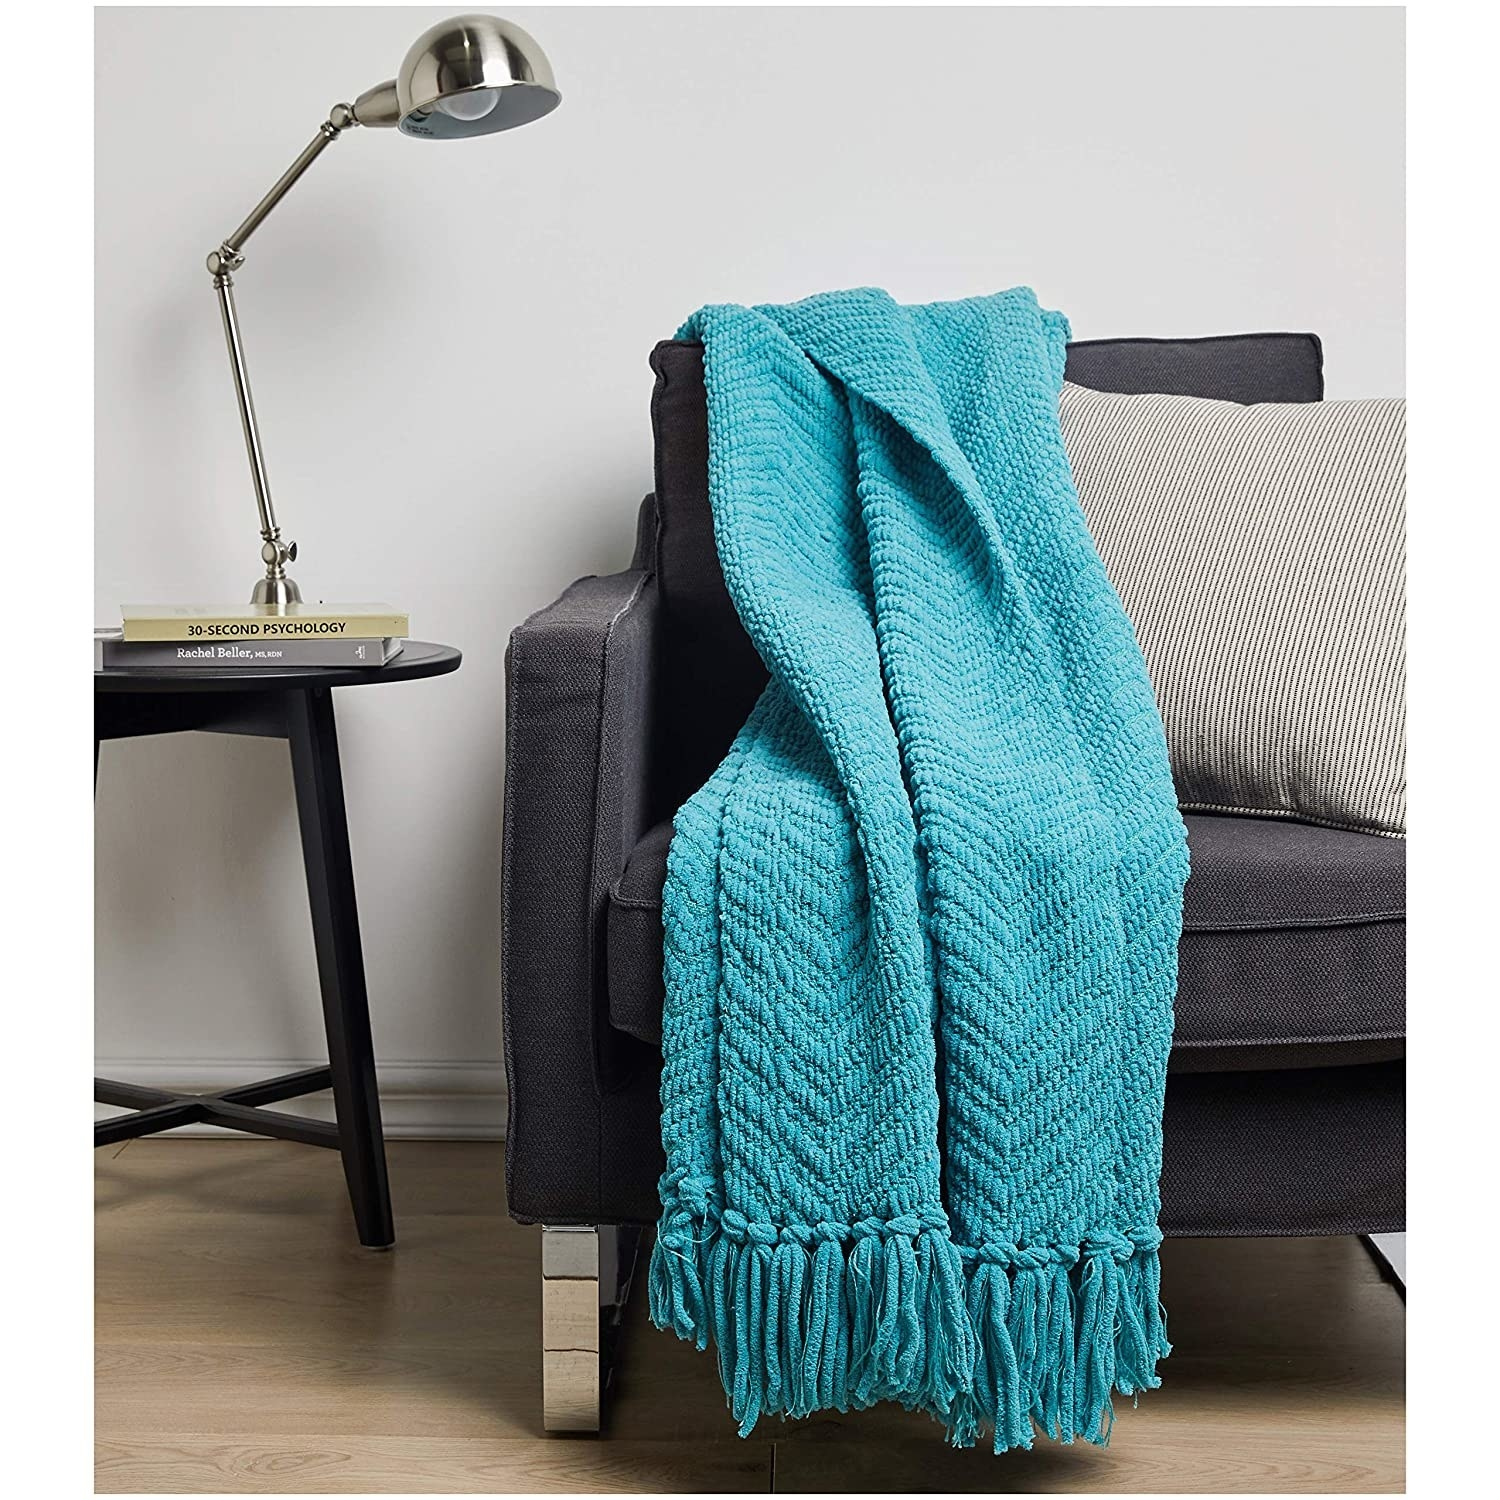 A teal throw blanket draped on a couch.